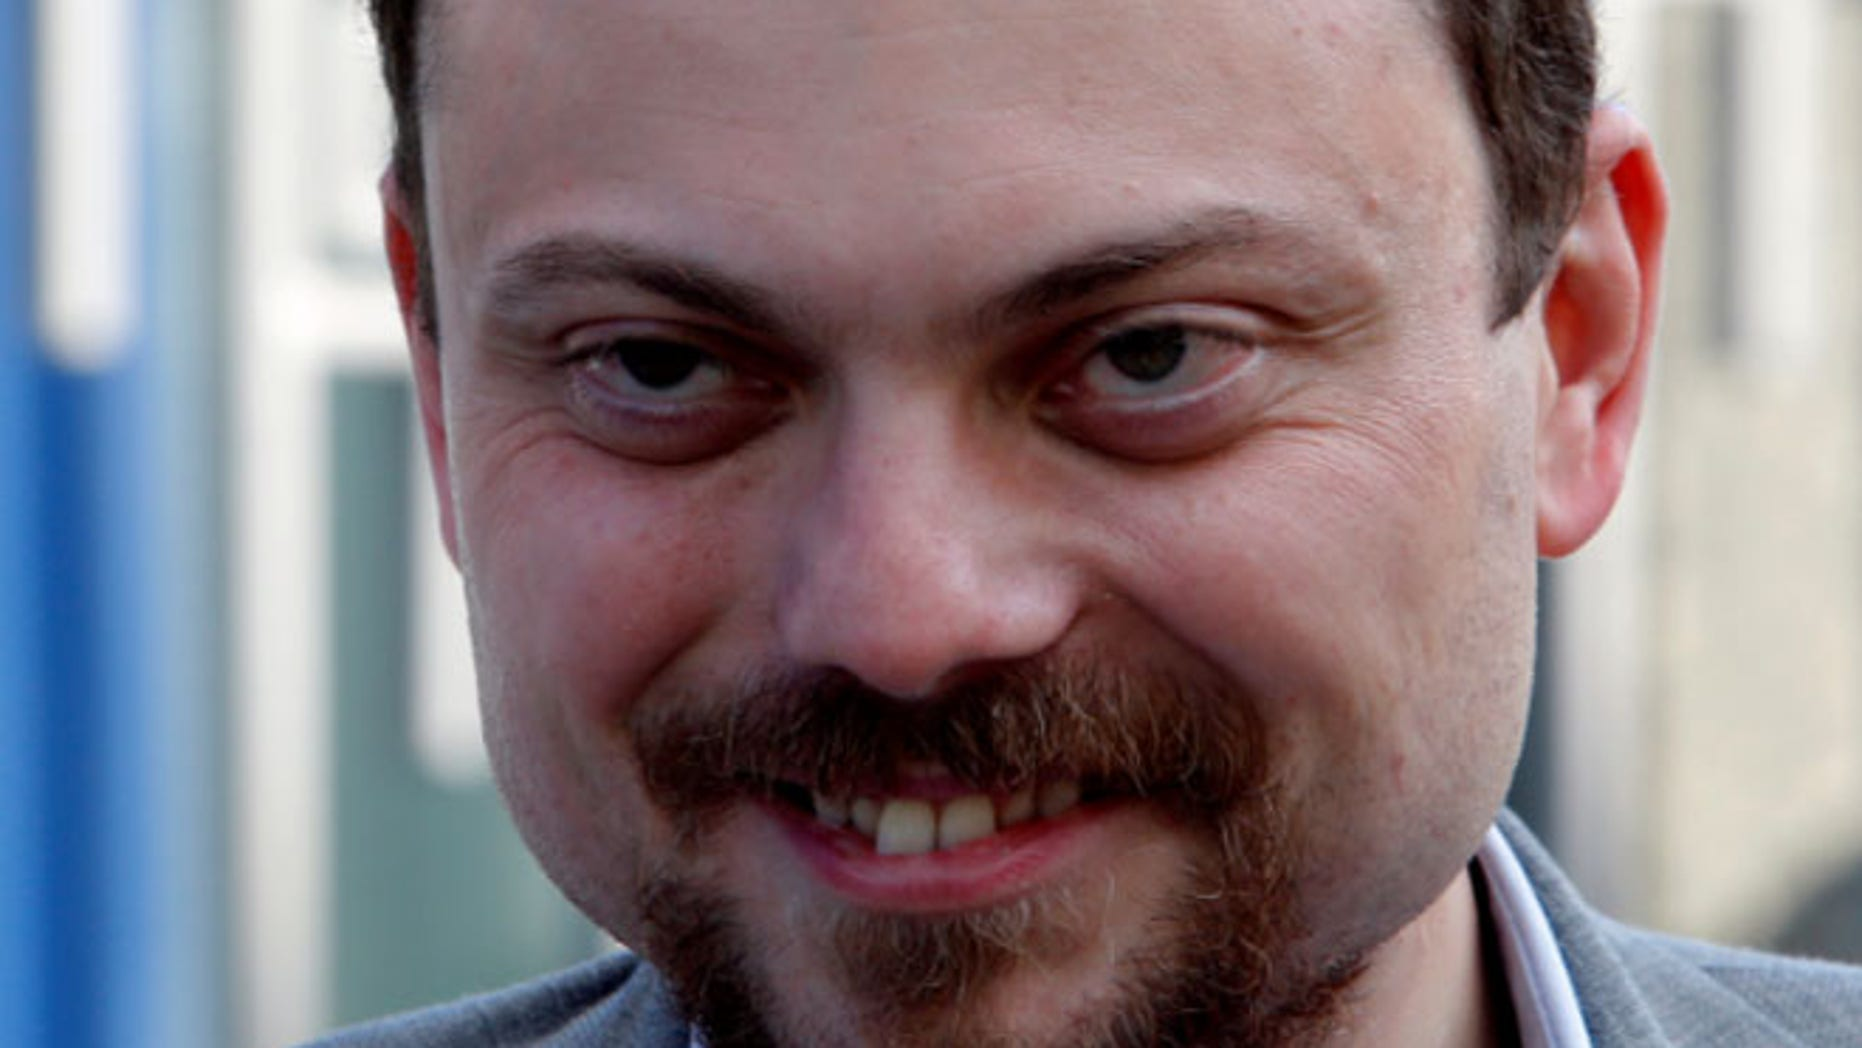 Russian opposition activist Vladimir Kara-Murza looks on following a visit of deputy candidates to the State Duma, the lower house of parliament